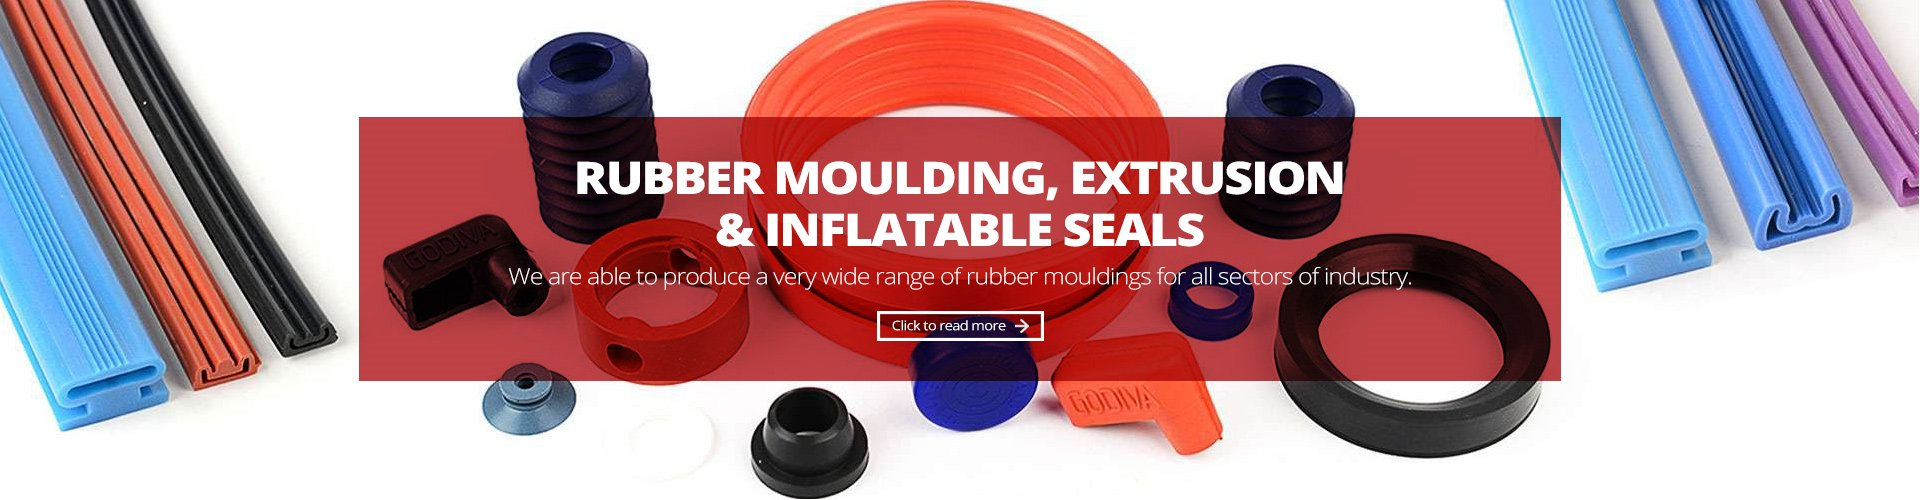 rubber moulding, extrusion and infllatable seals